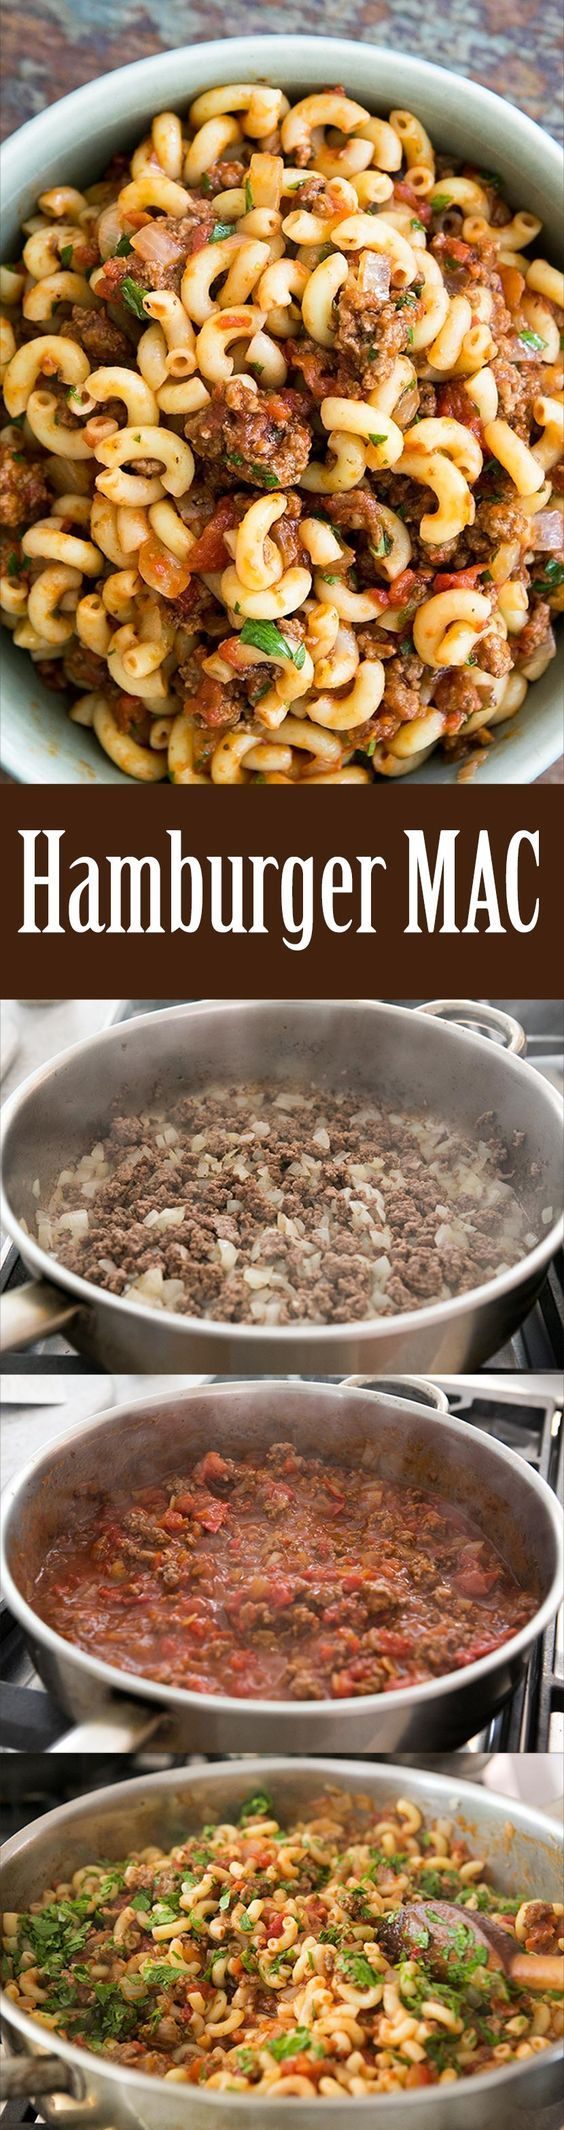 Hamburger Mac! So EASY takes less than 30 minutes start to finish. Ground beef onions tomato sauce macaroni. Your family will LOVE this. Perfect midweek meal. On